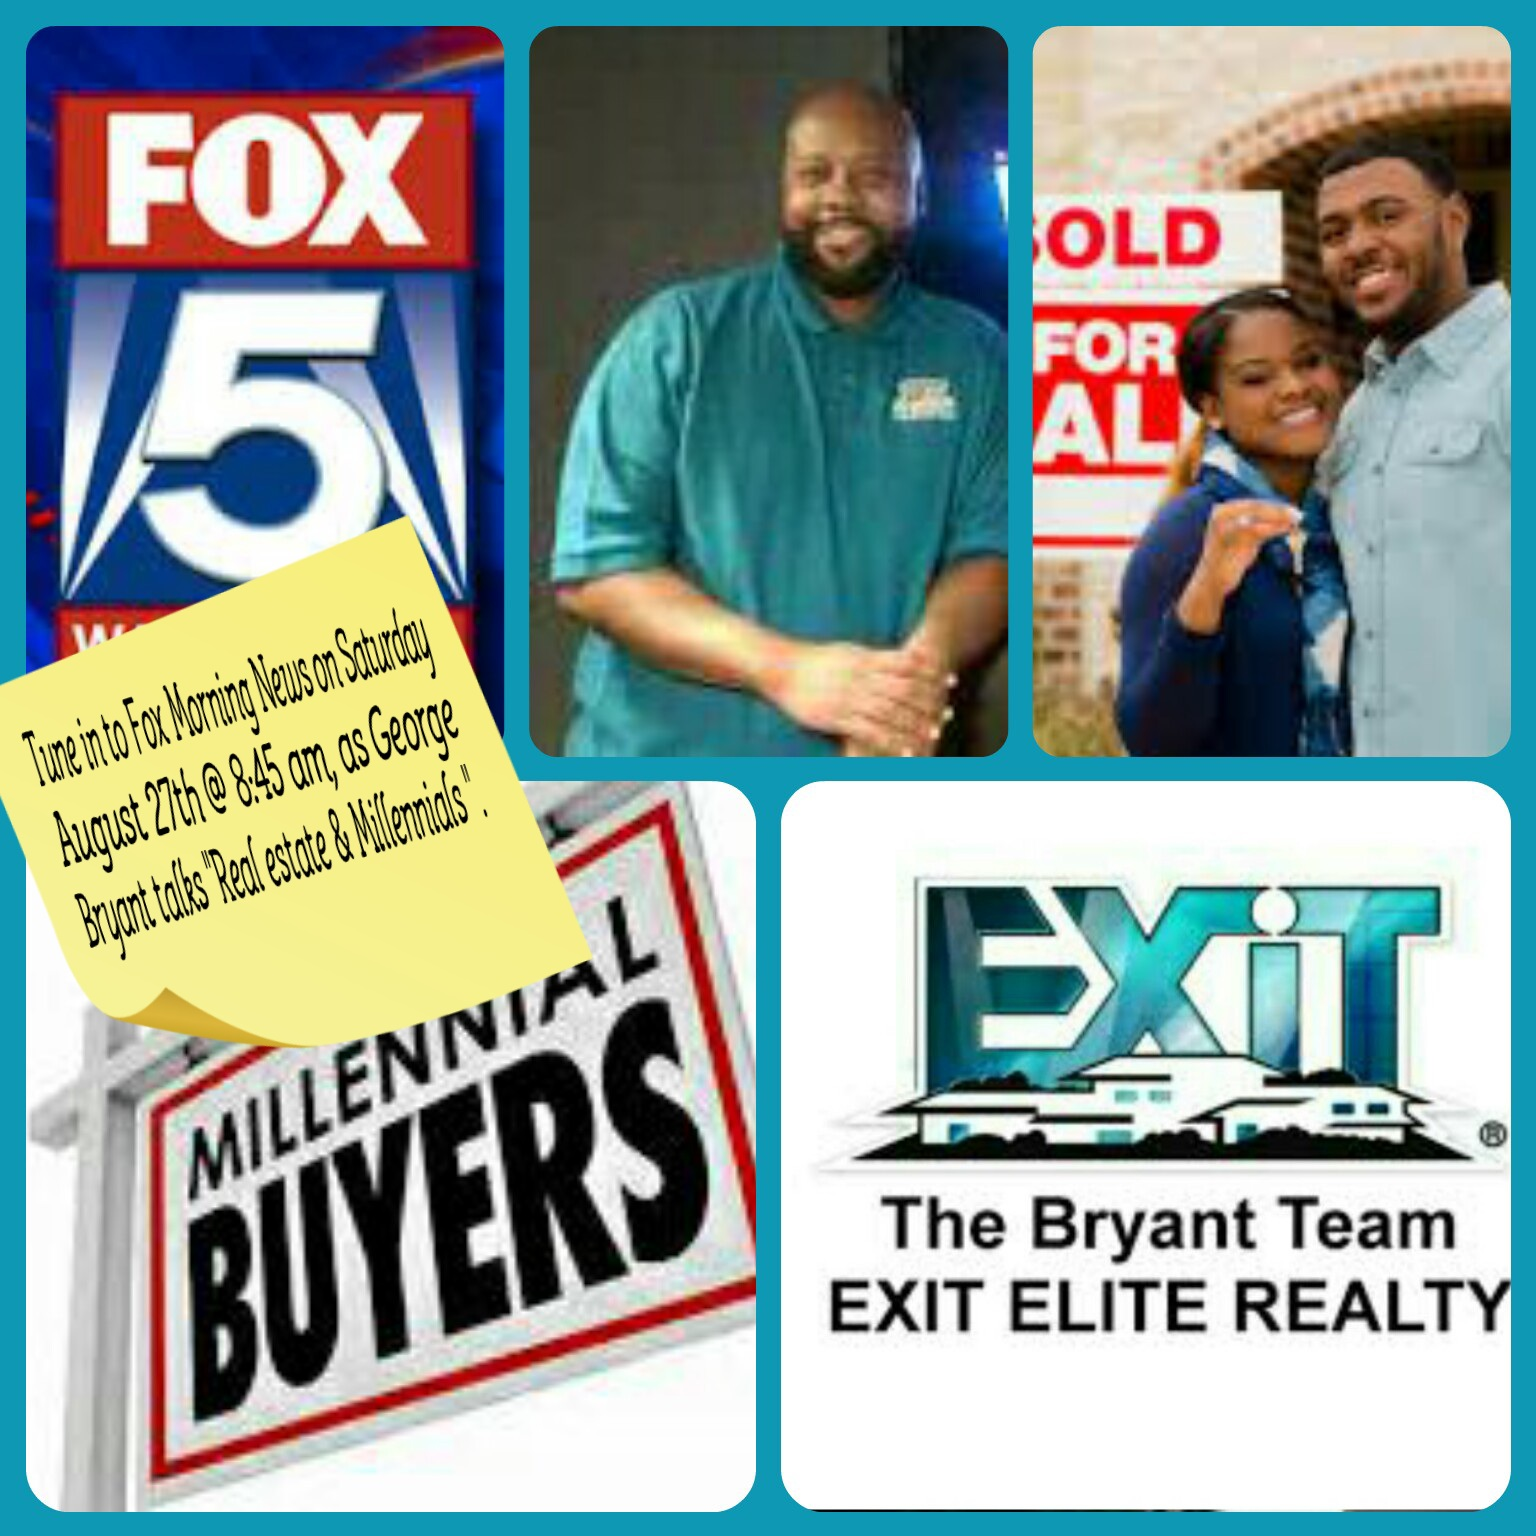 Tune in to Fox 5 next Saturday to hear George Bryant...